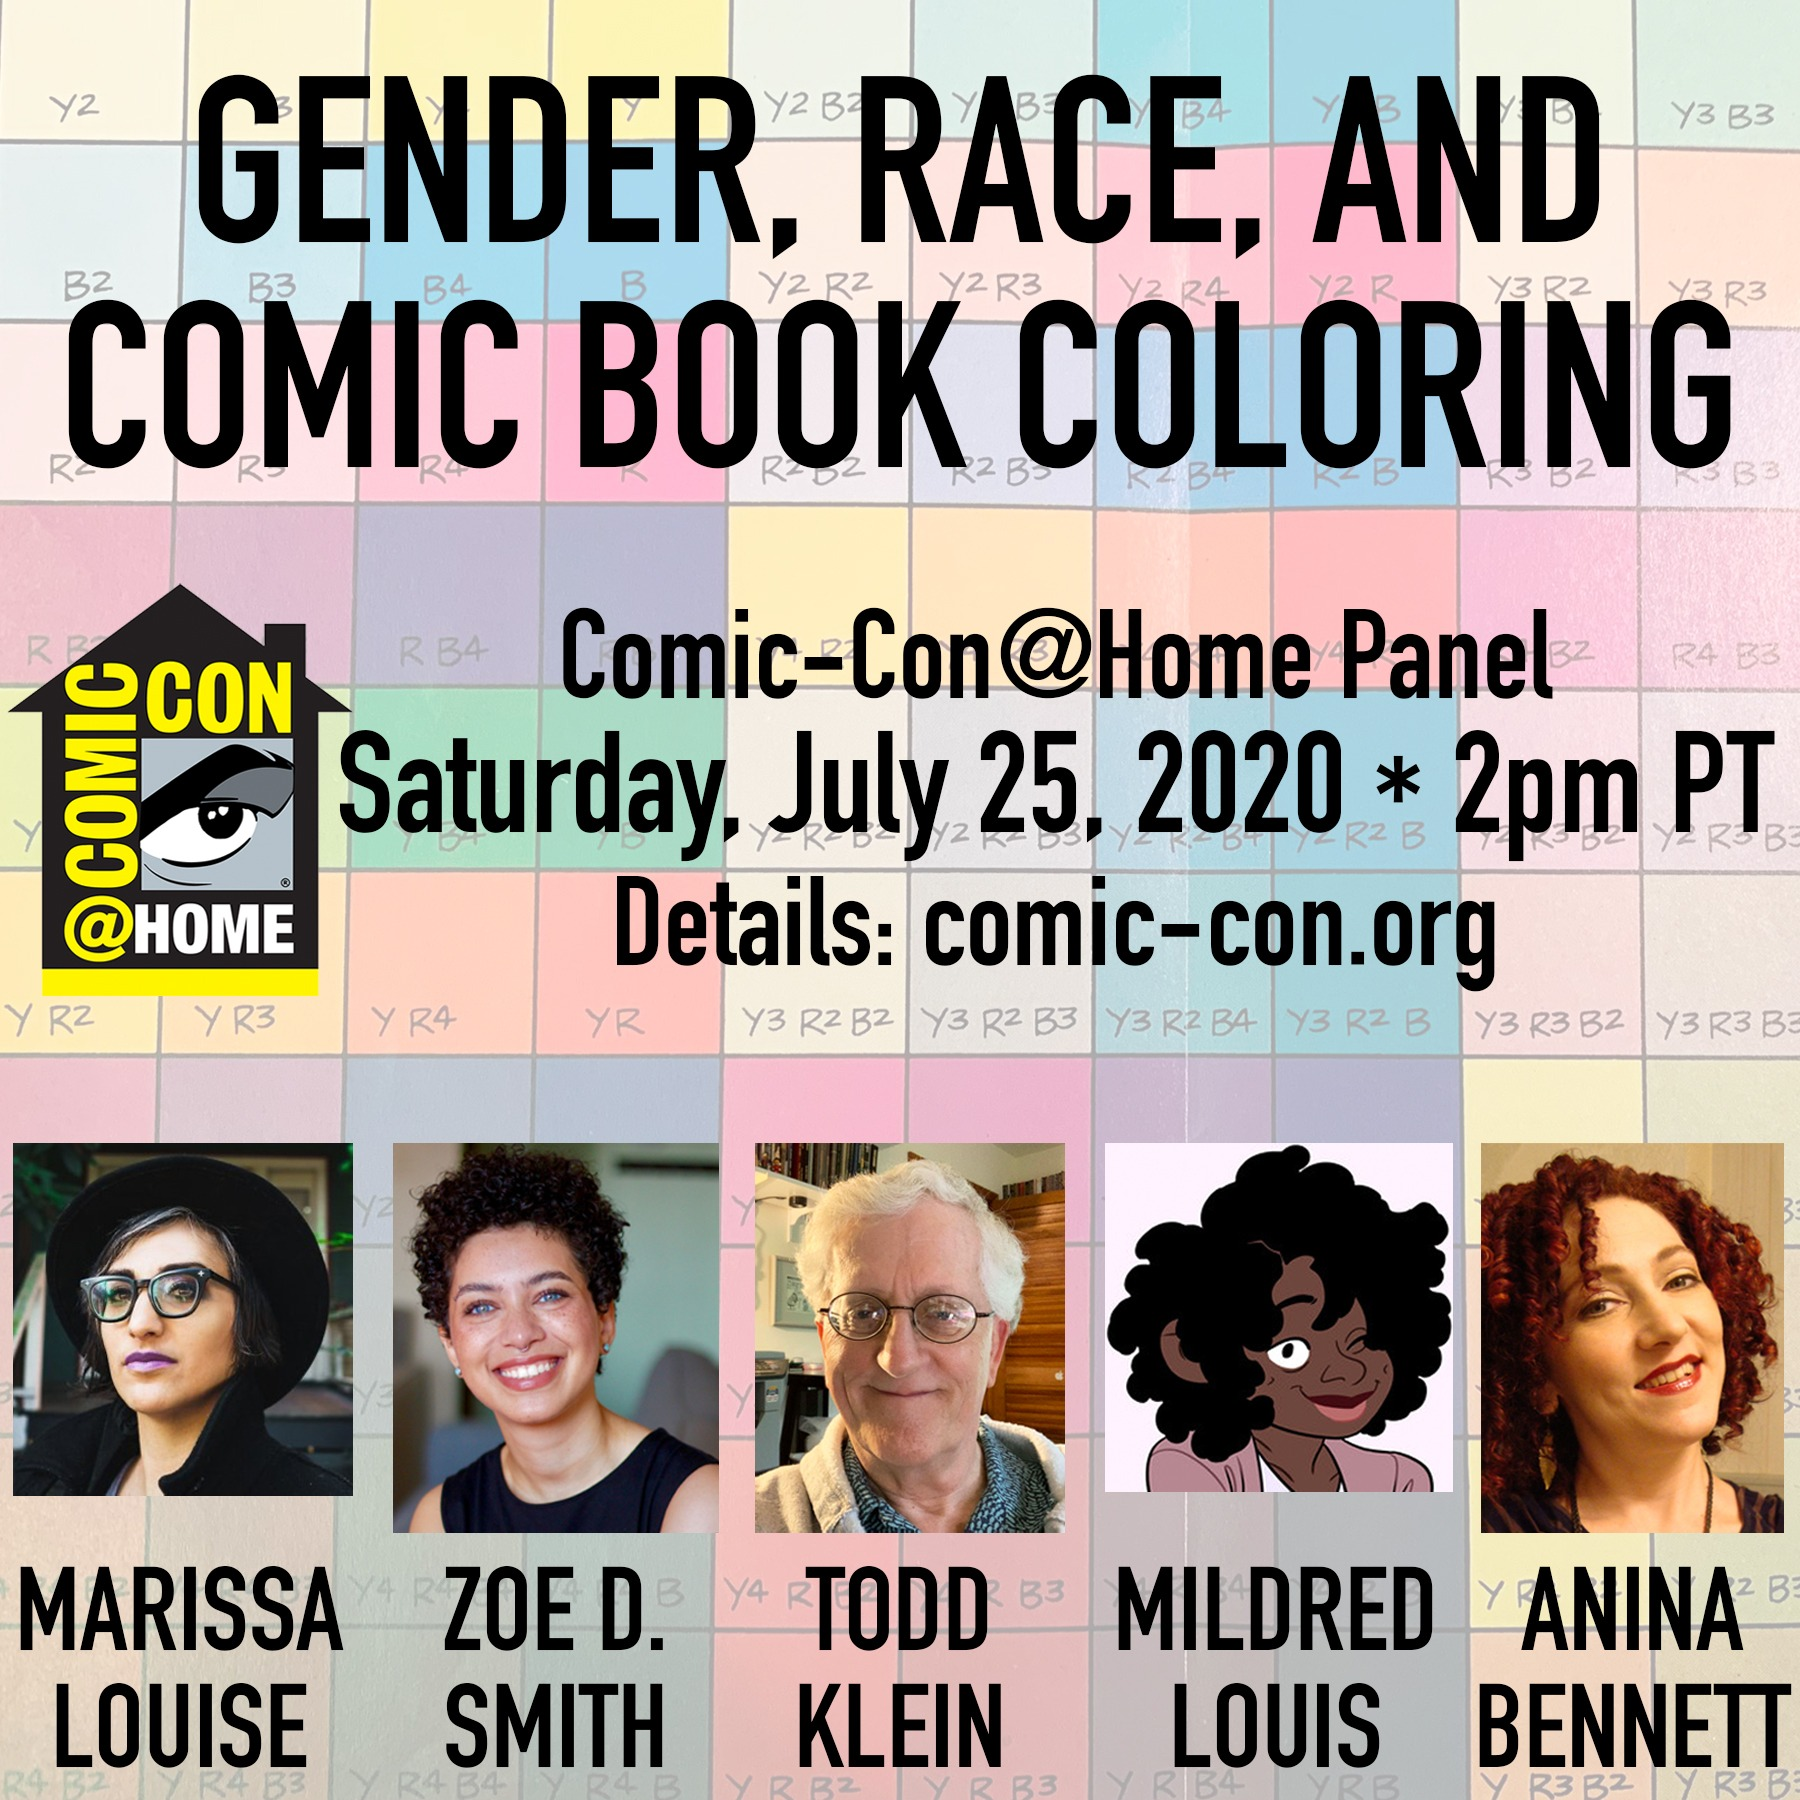 @bigredhair VIDEO - 2020 Comic-Con panel: Gender, Race, and Comic Book Coloring Link Thumbnail | Linktree